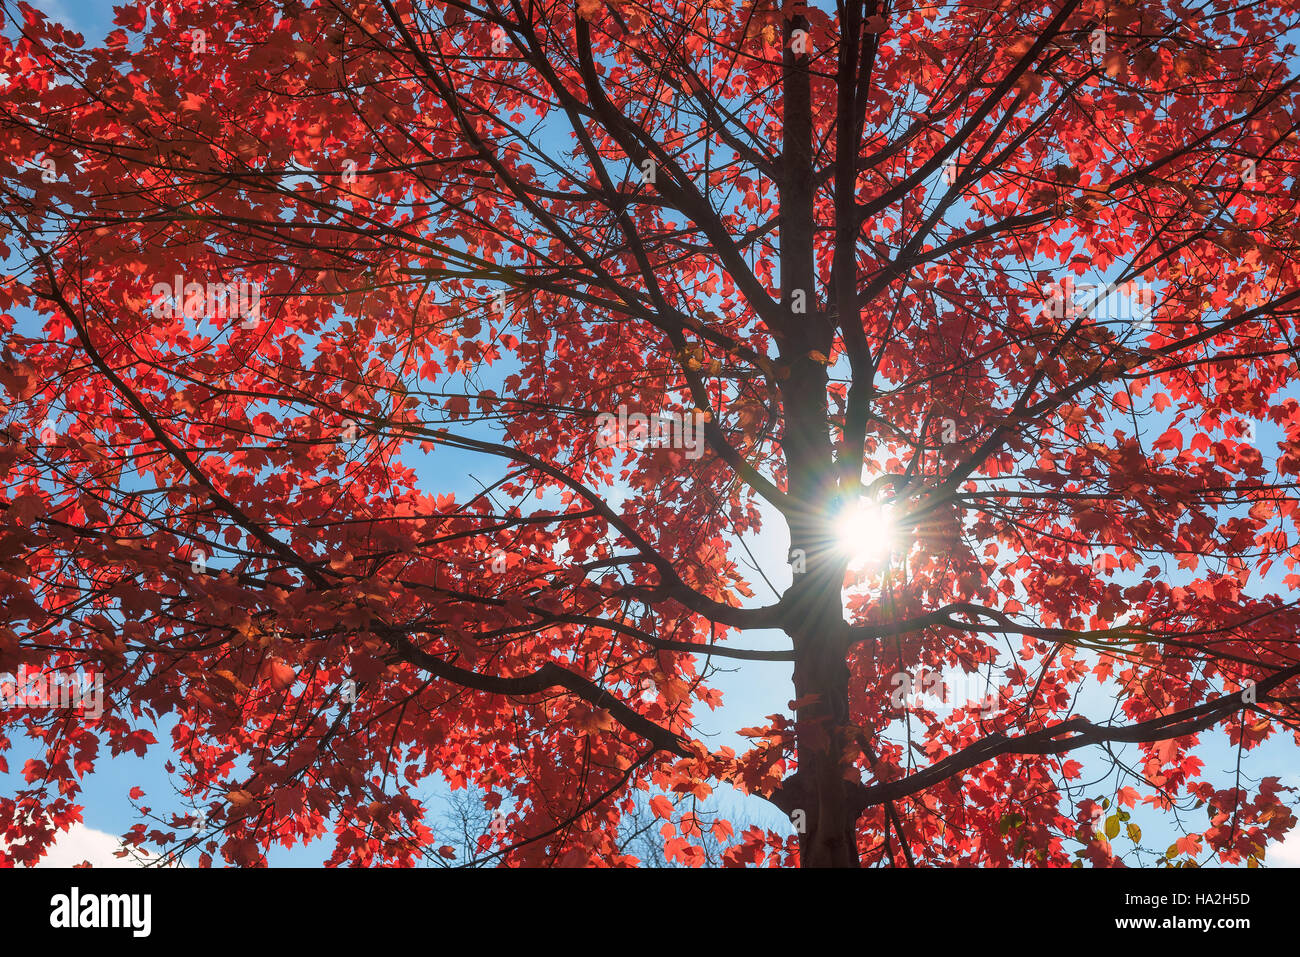 Autumnal ornament, red leaves of maple - Stock Image